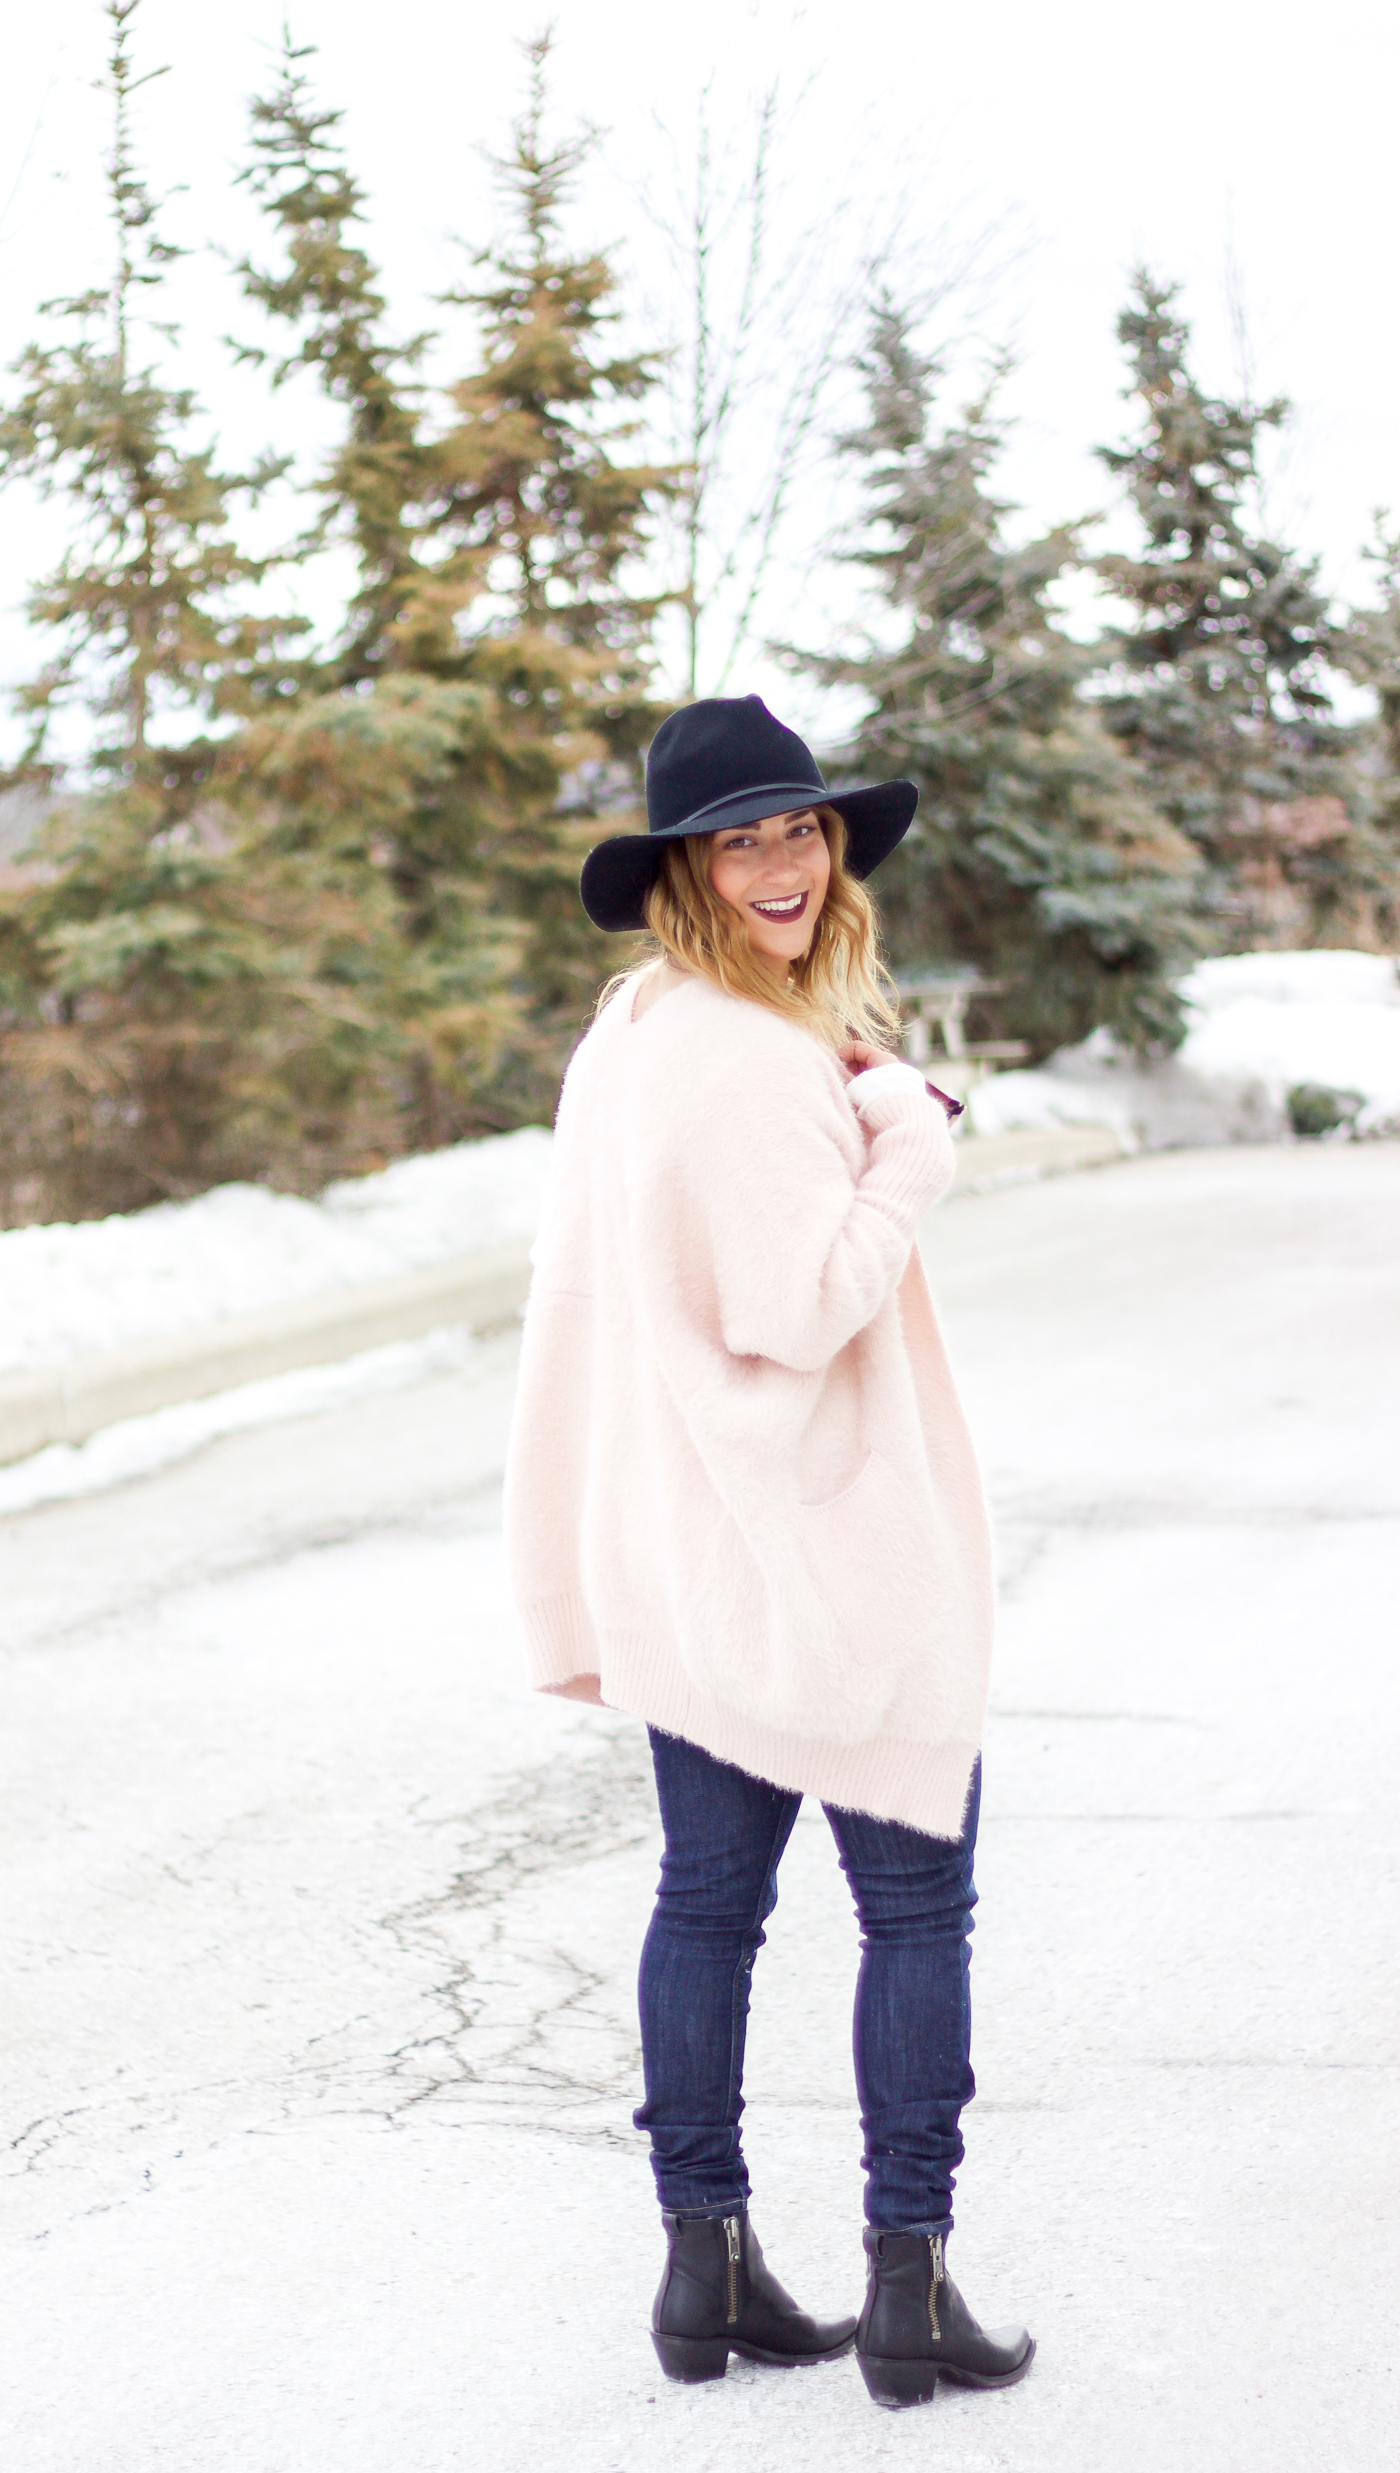 Jackie is a Canadian fashion and lifestyle blogger and she's wearing a pink cozy cardigan from Chicwish